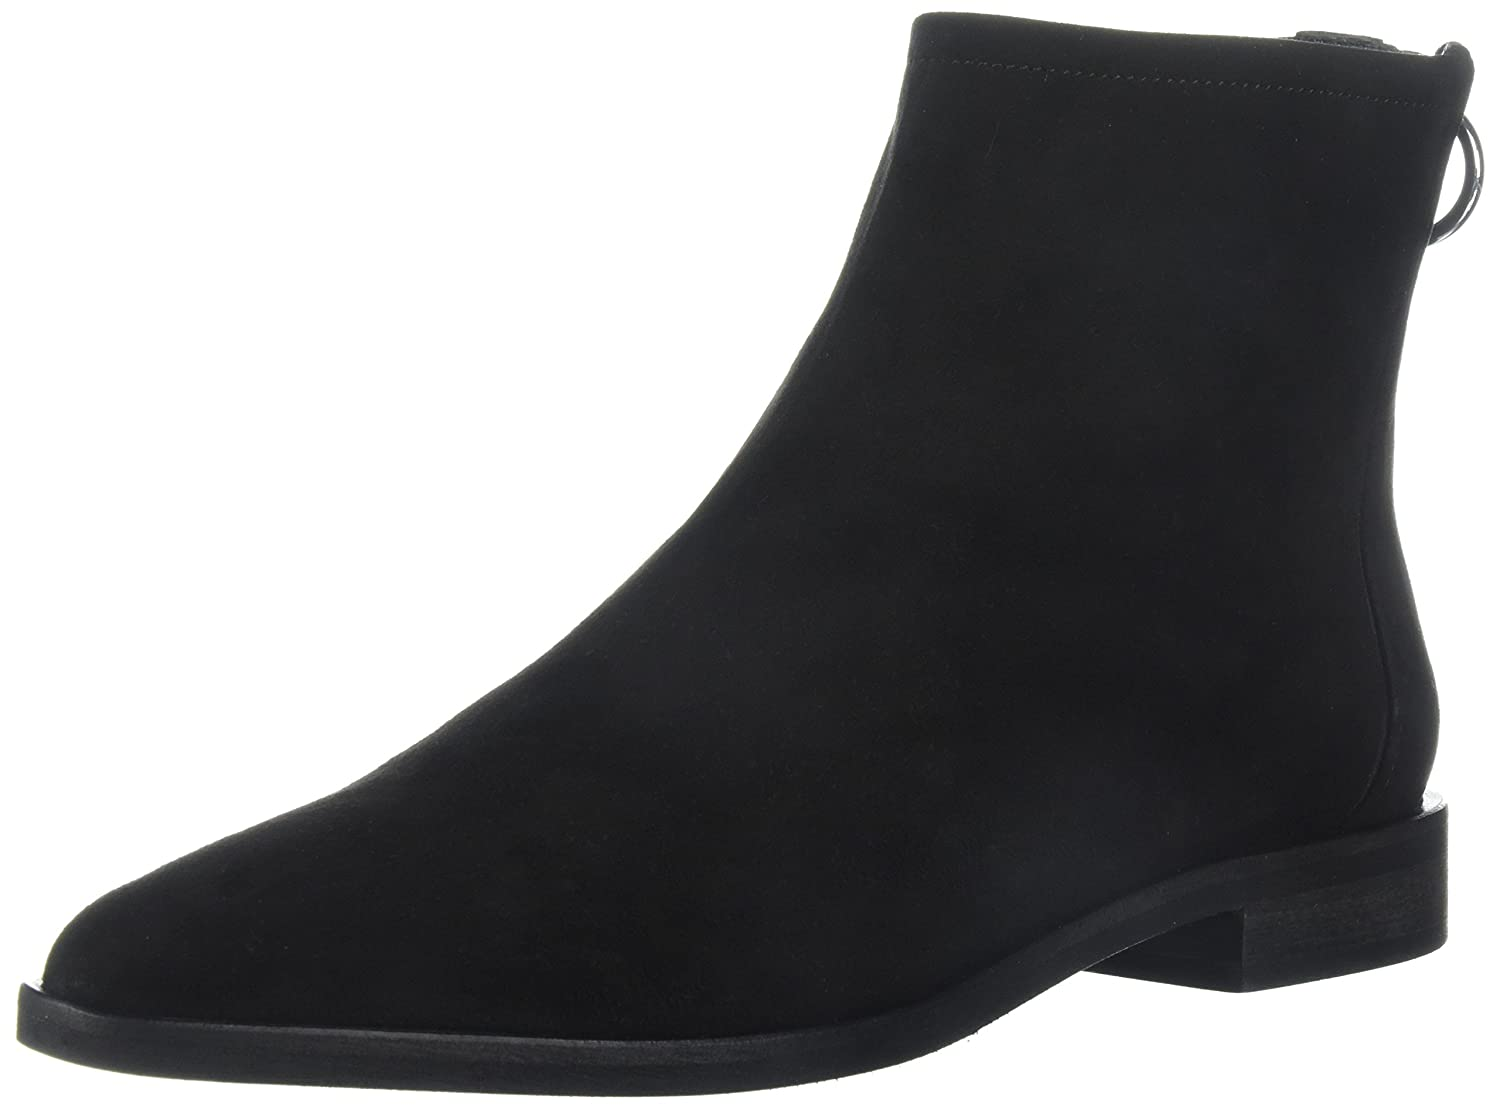 Via Spiga Women's Edie Ankle Boot B074CYG5YQ 7 B(M) US|Black Suede